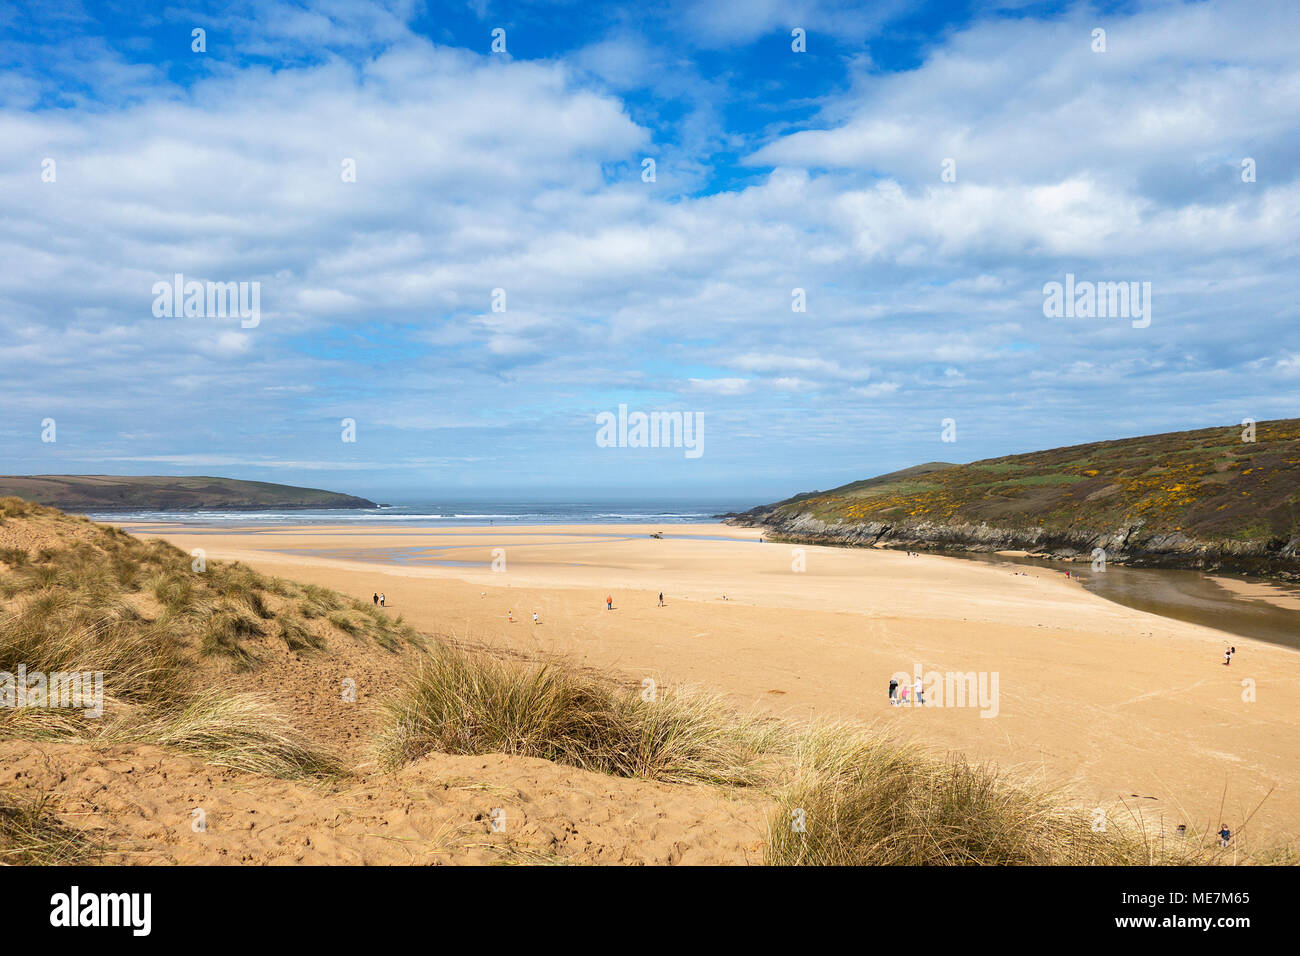 sunny spring weather at crantock beach, cornwall, england, britain, uk. - Stock Image